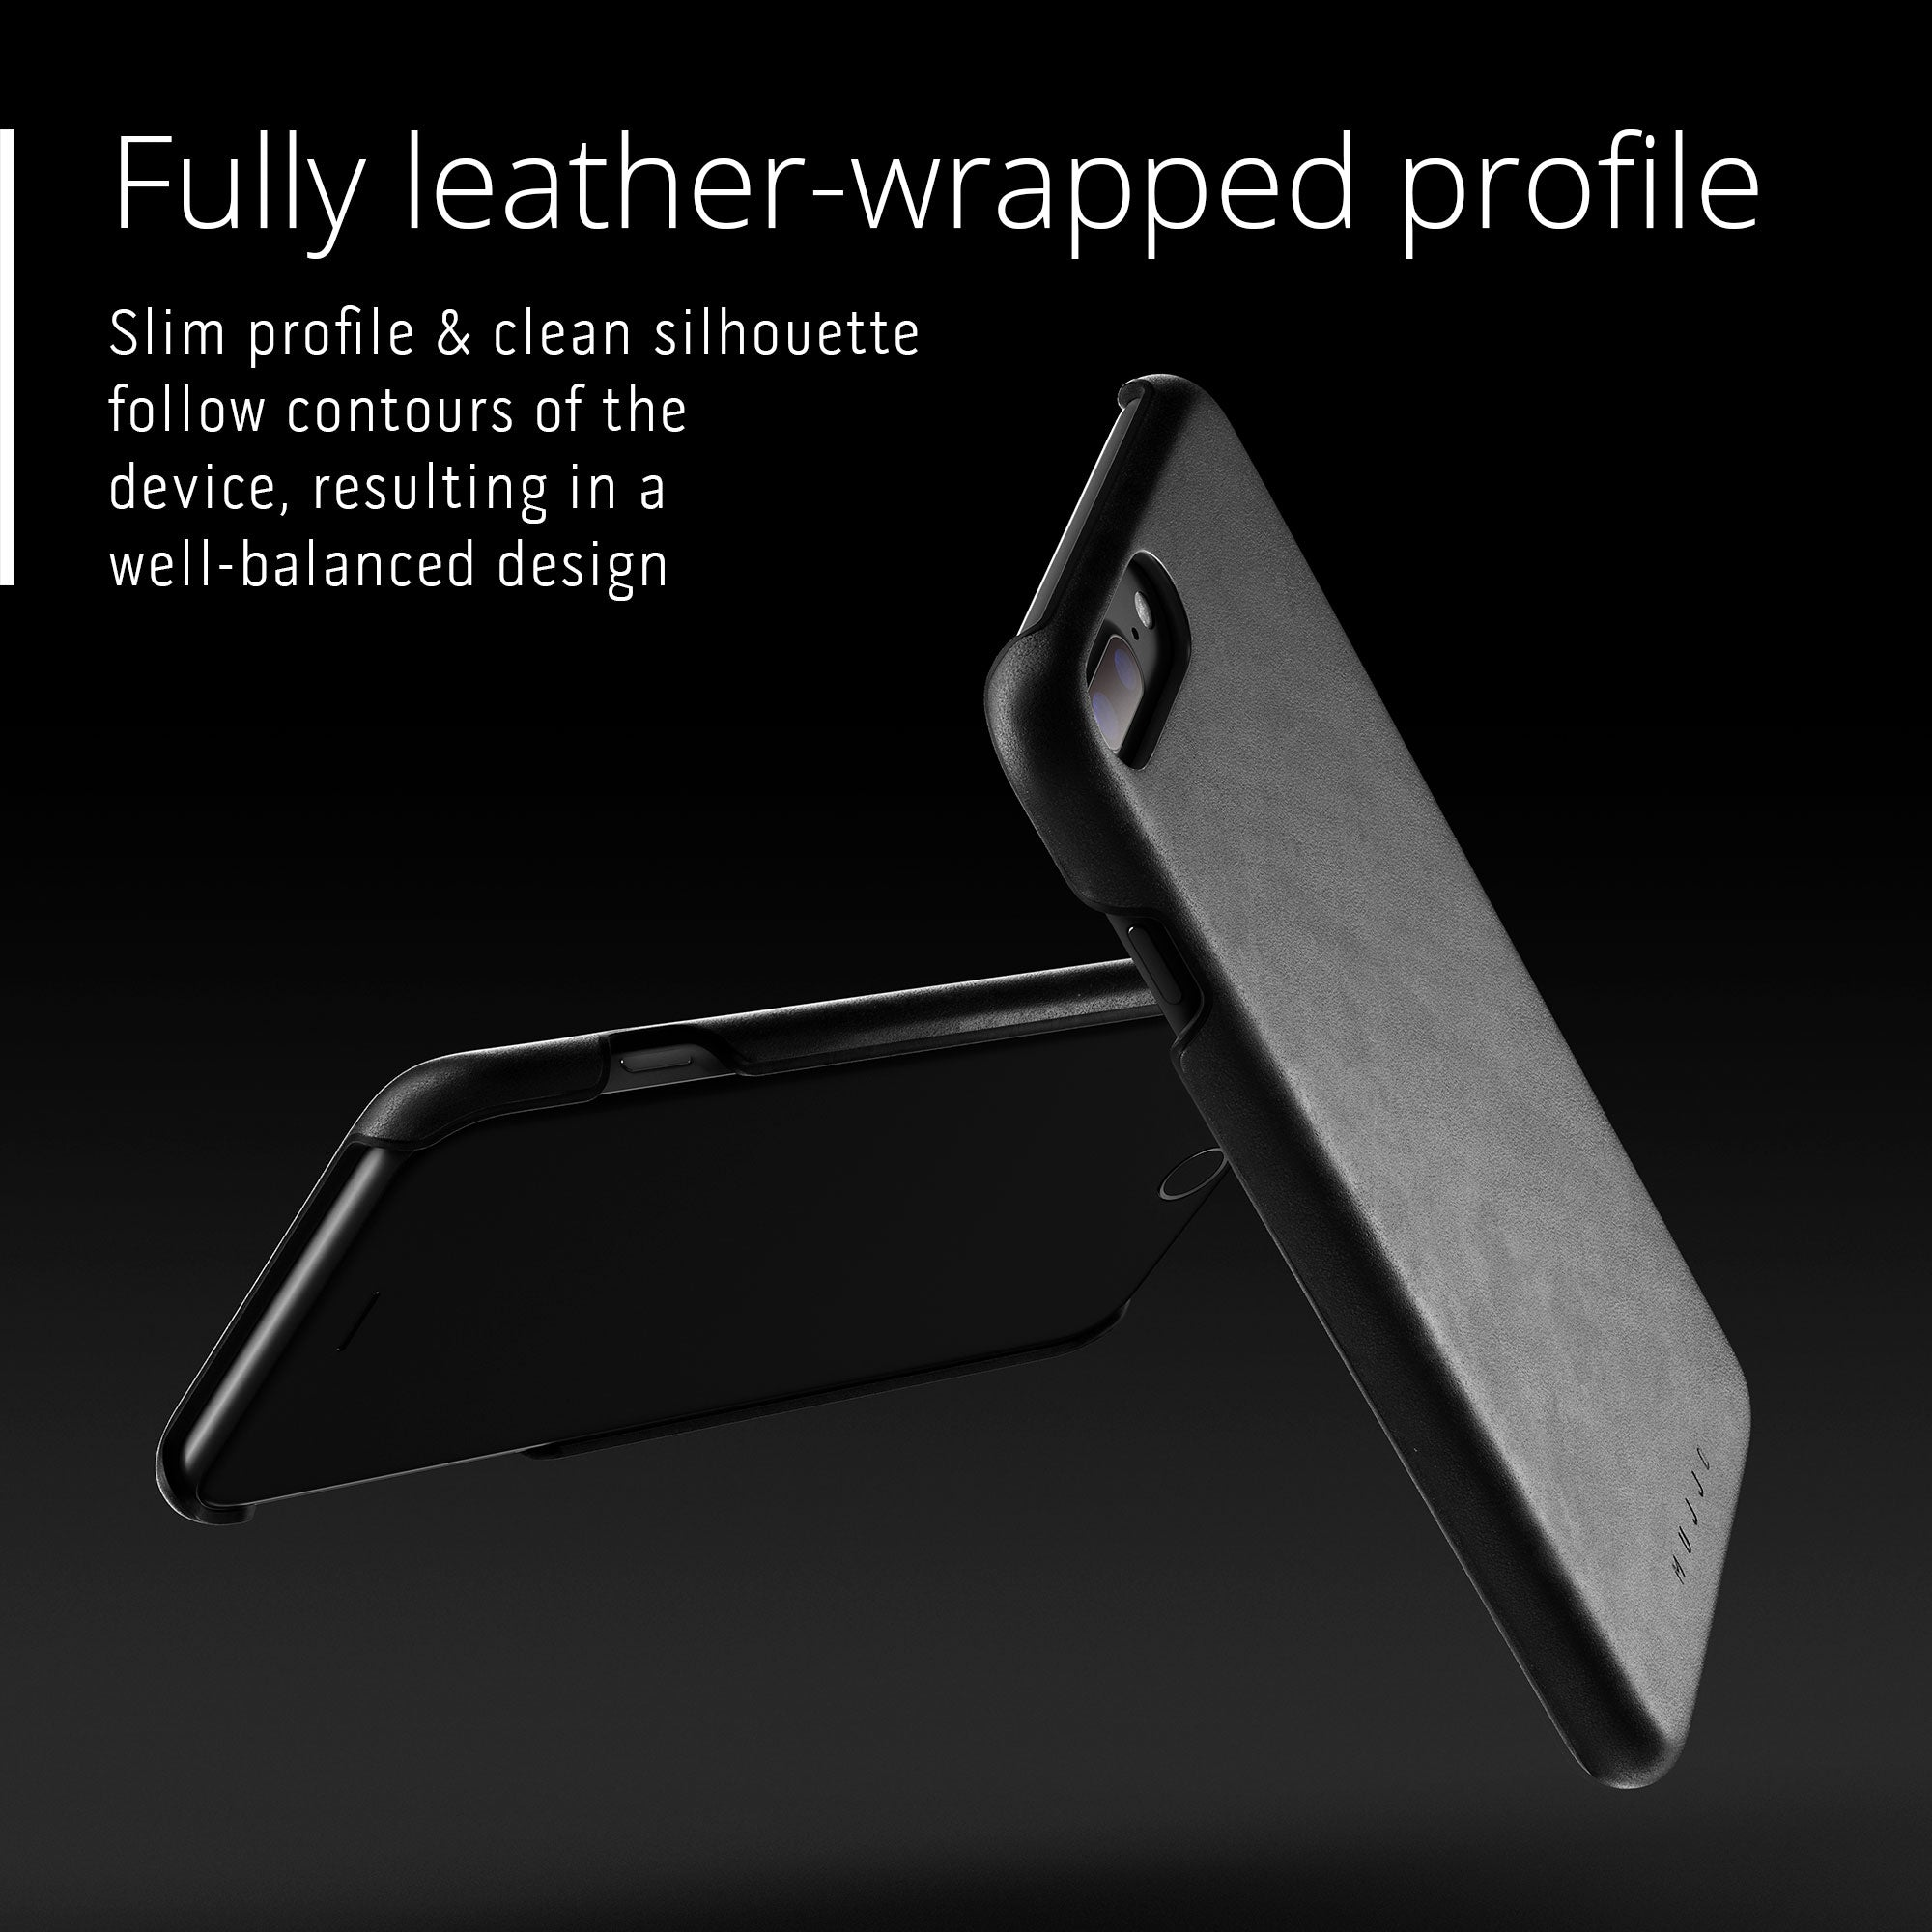 Mujjo Moulded Edge Leather case for Apple iPhone 8 Plus, iPhone 7 Plus